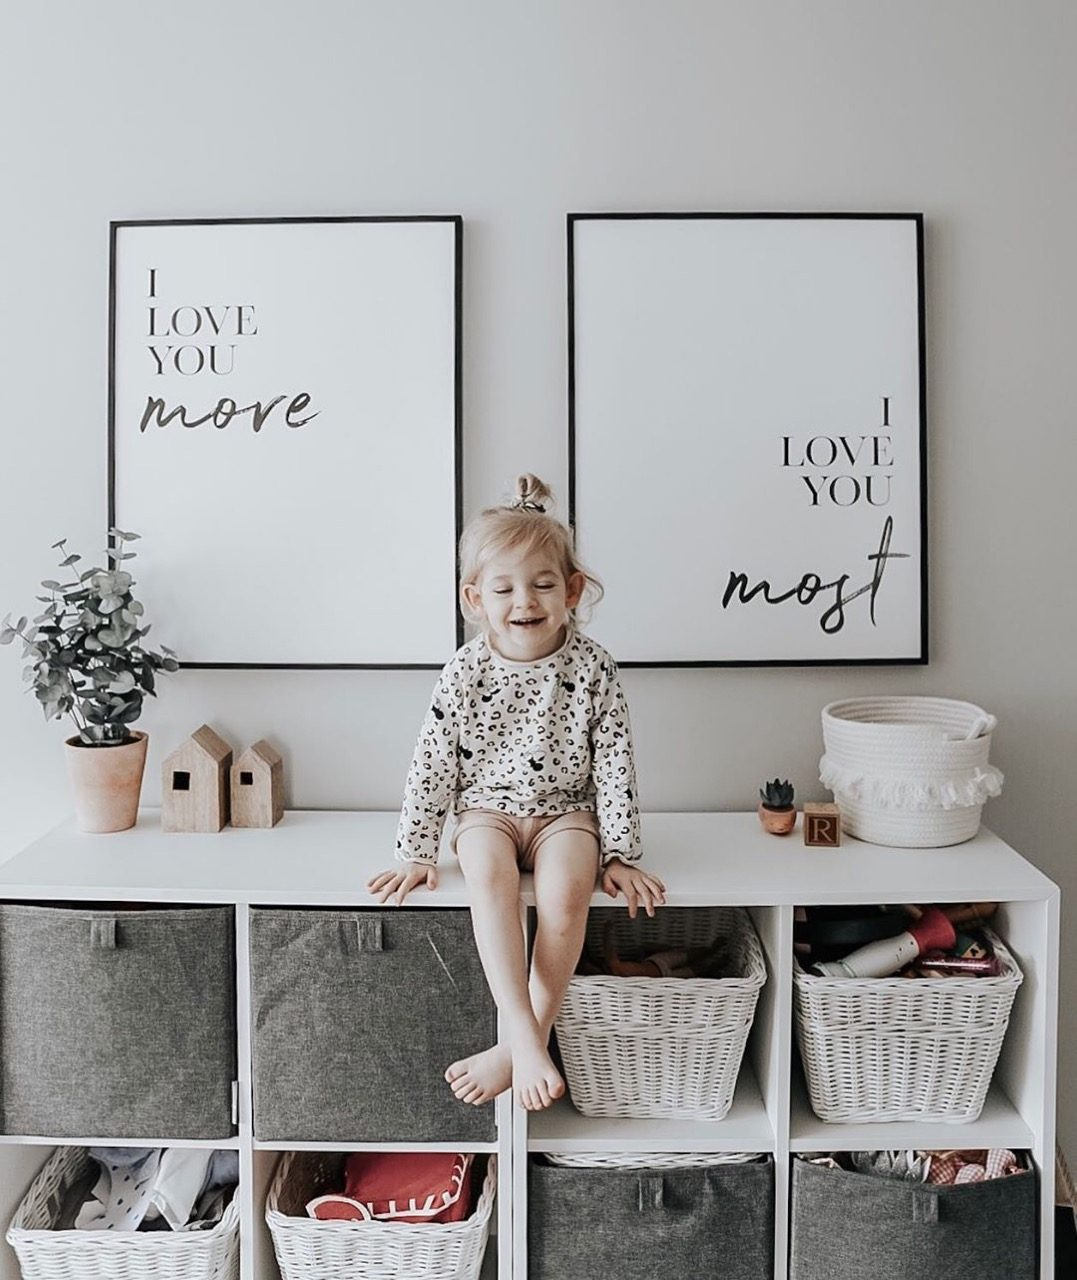 I love you more/ I love you most poster frames